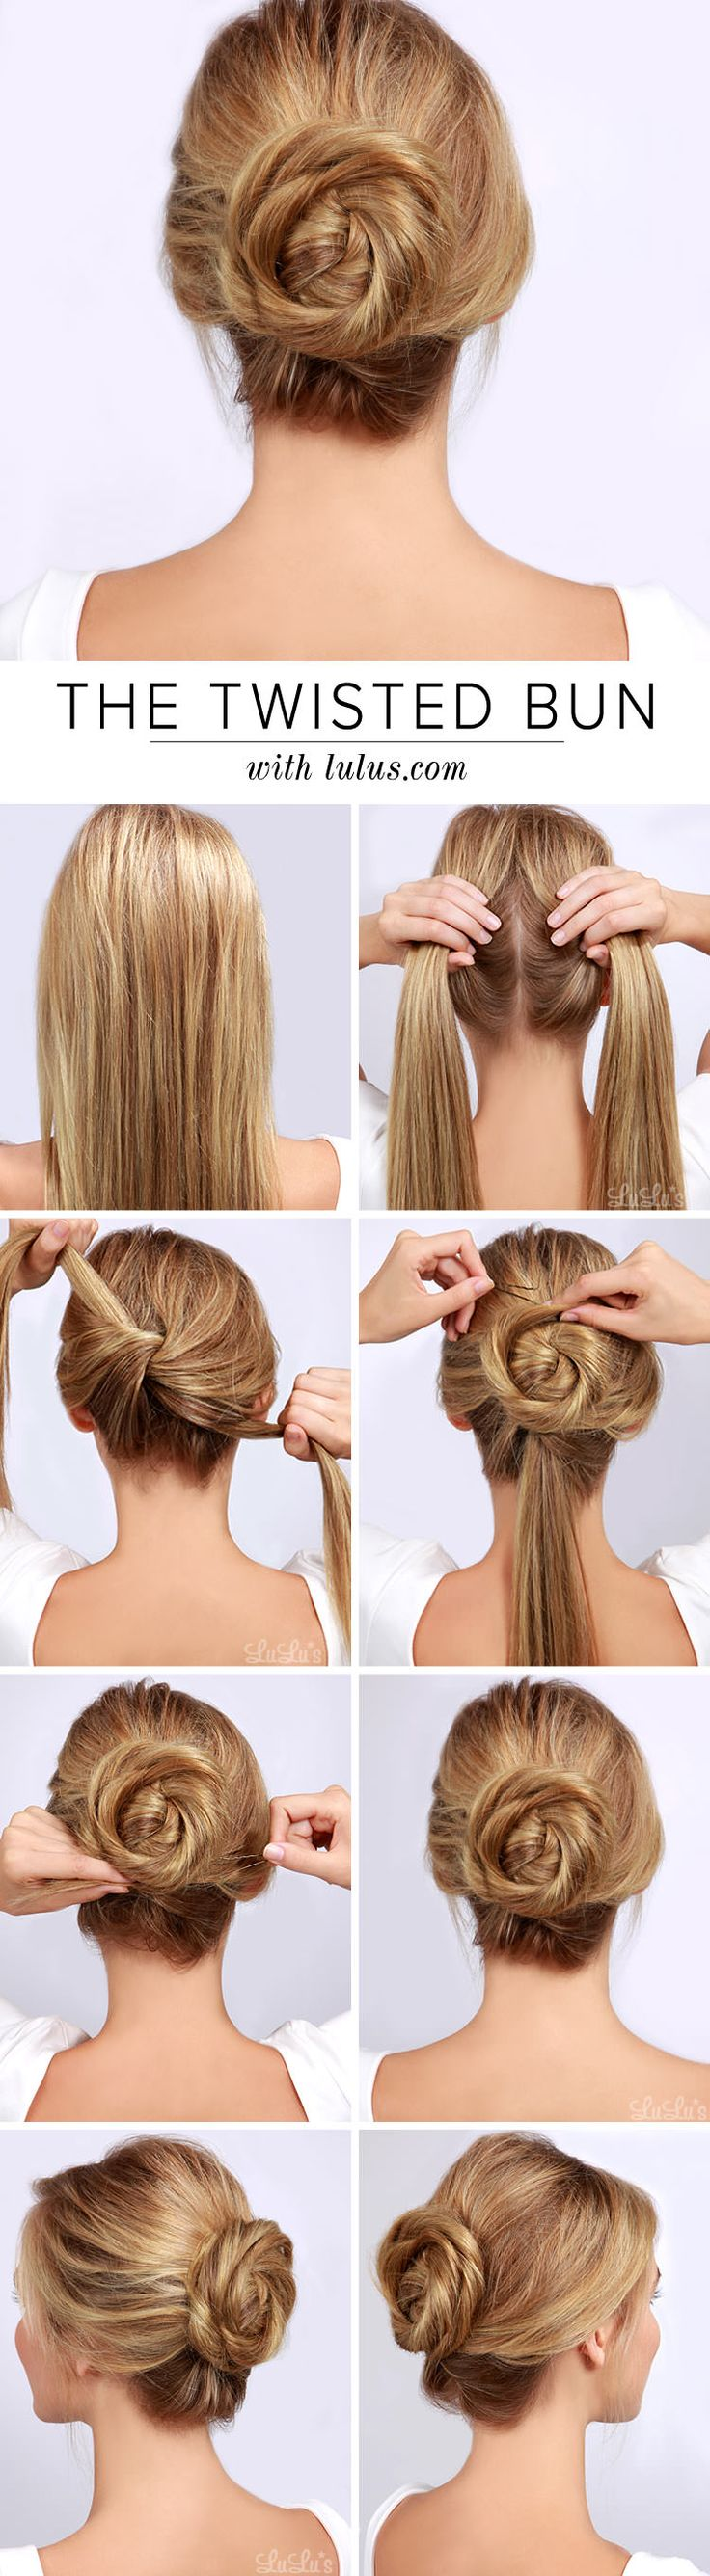 Fantastic 1000 Ideas About Cute Simple Hairstyles On Pinterest Simple Short Hairstyles Gunalazisus